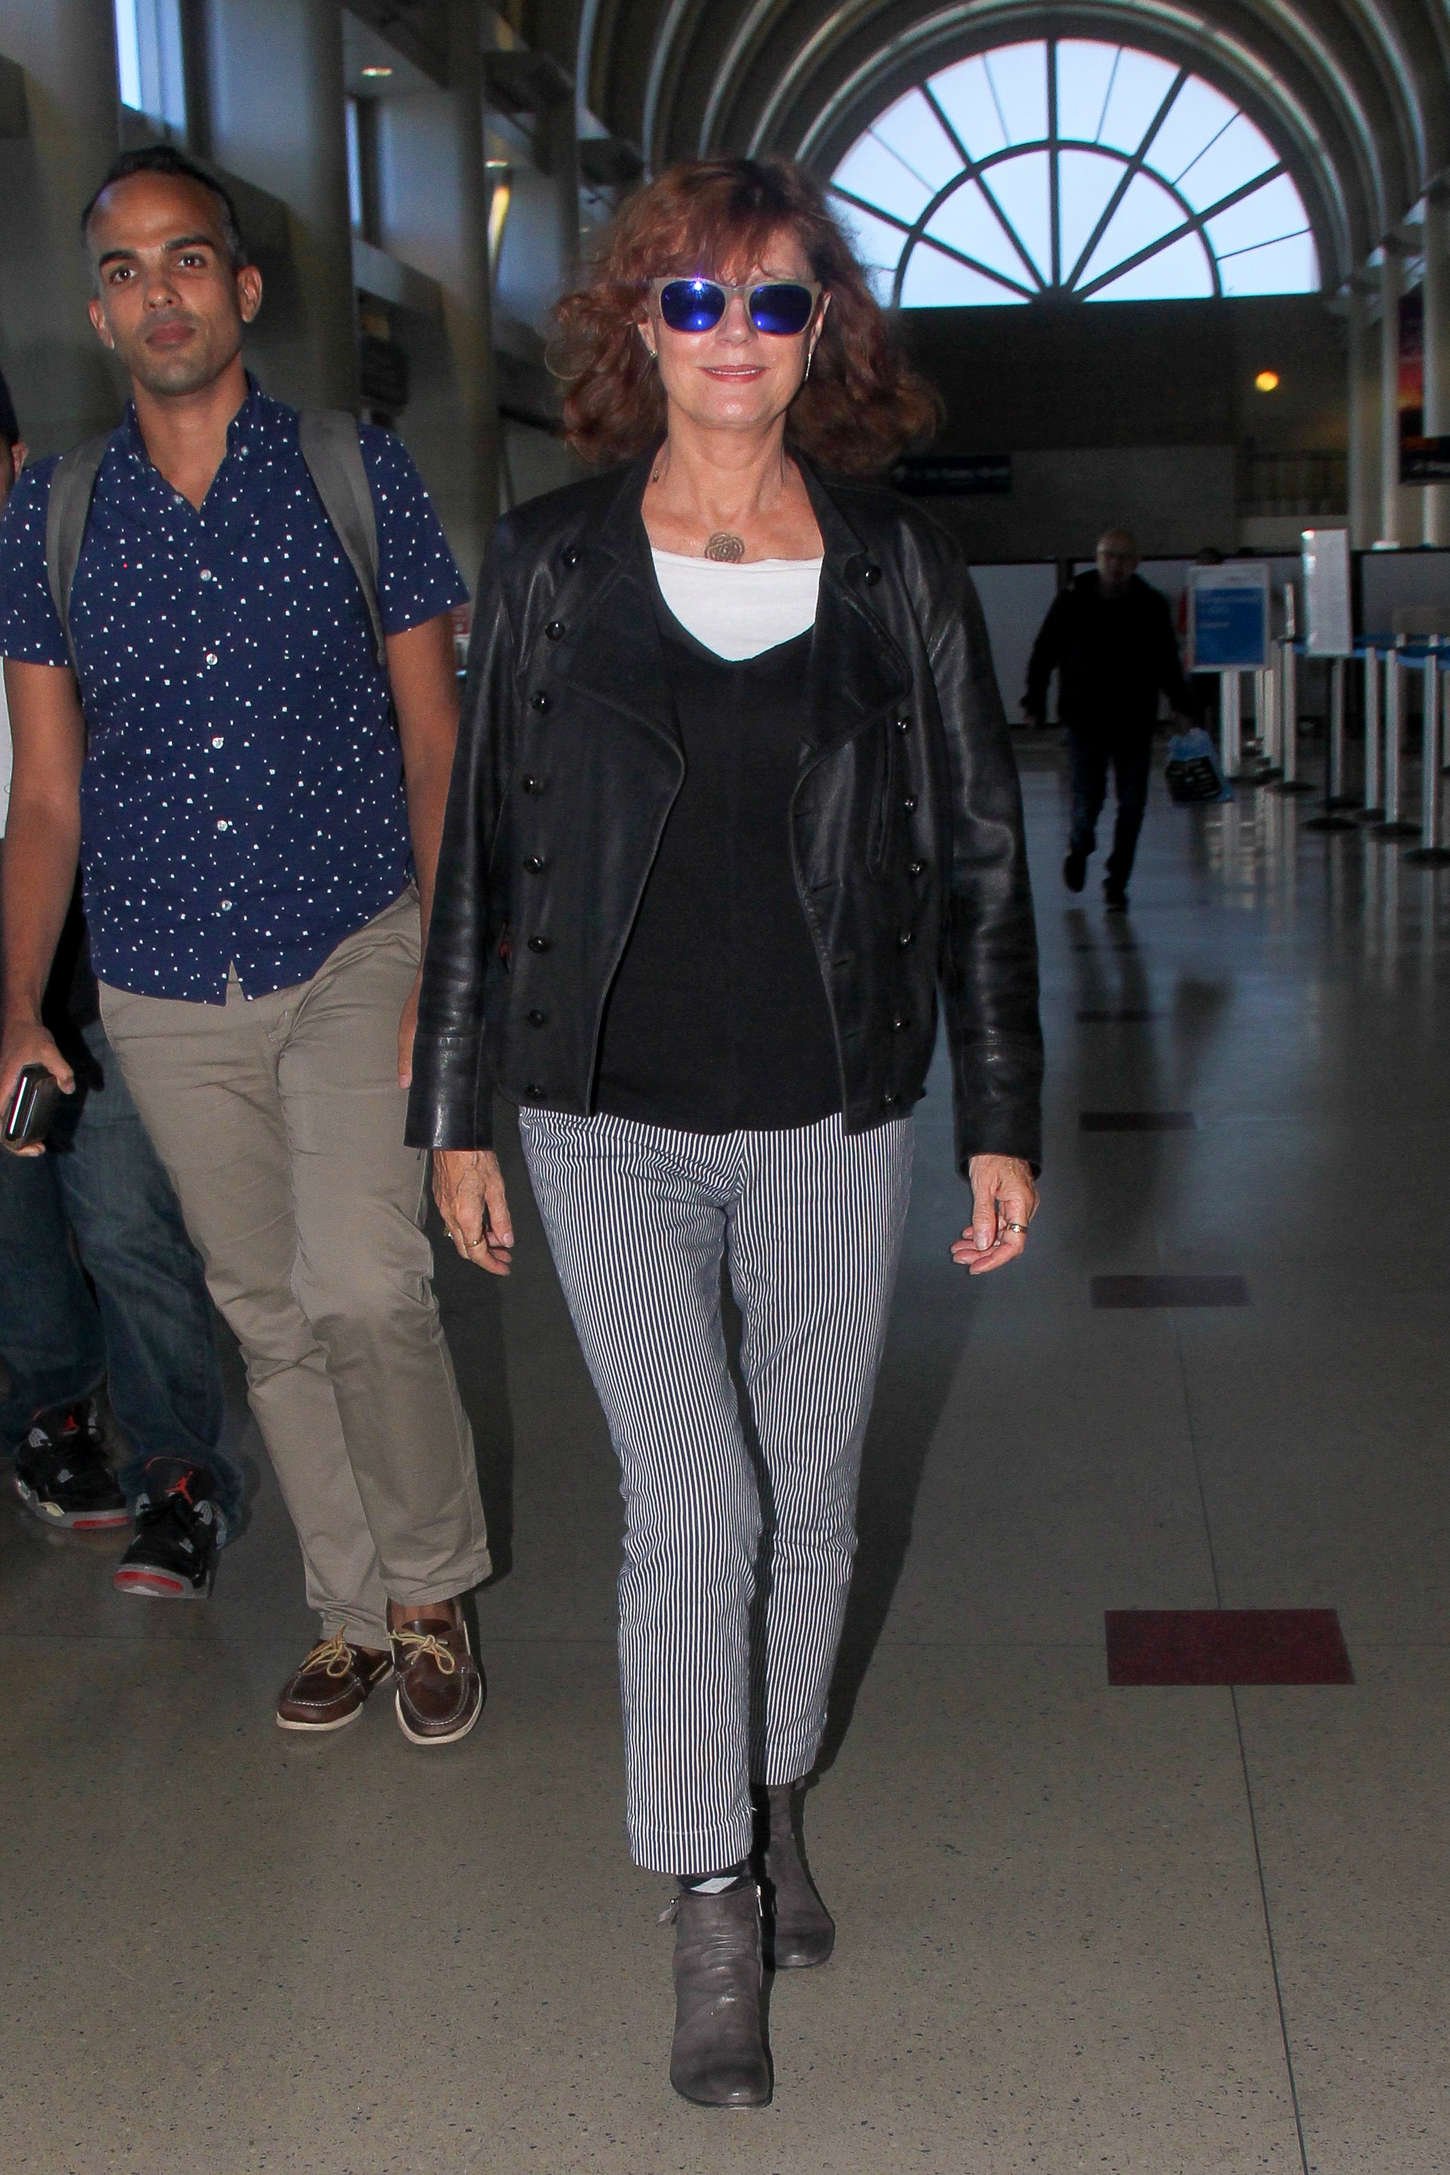 Susan Sarandon Arrives at LAX Airport in Los Angeles